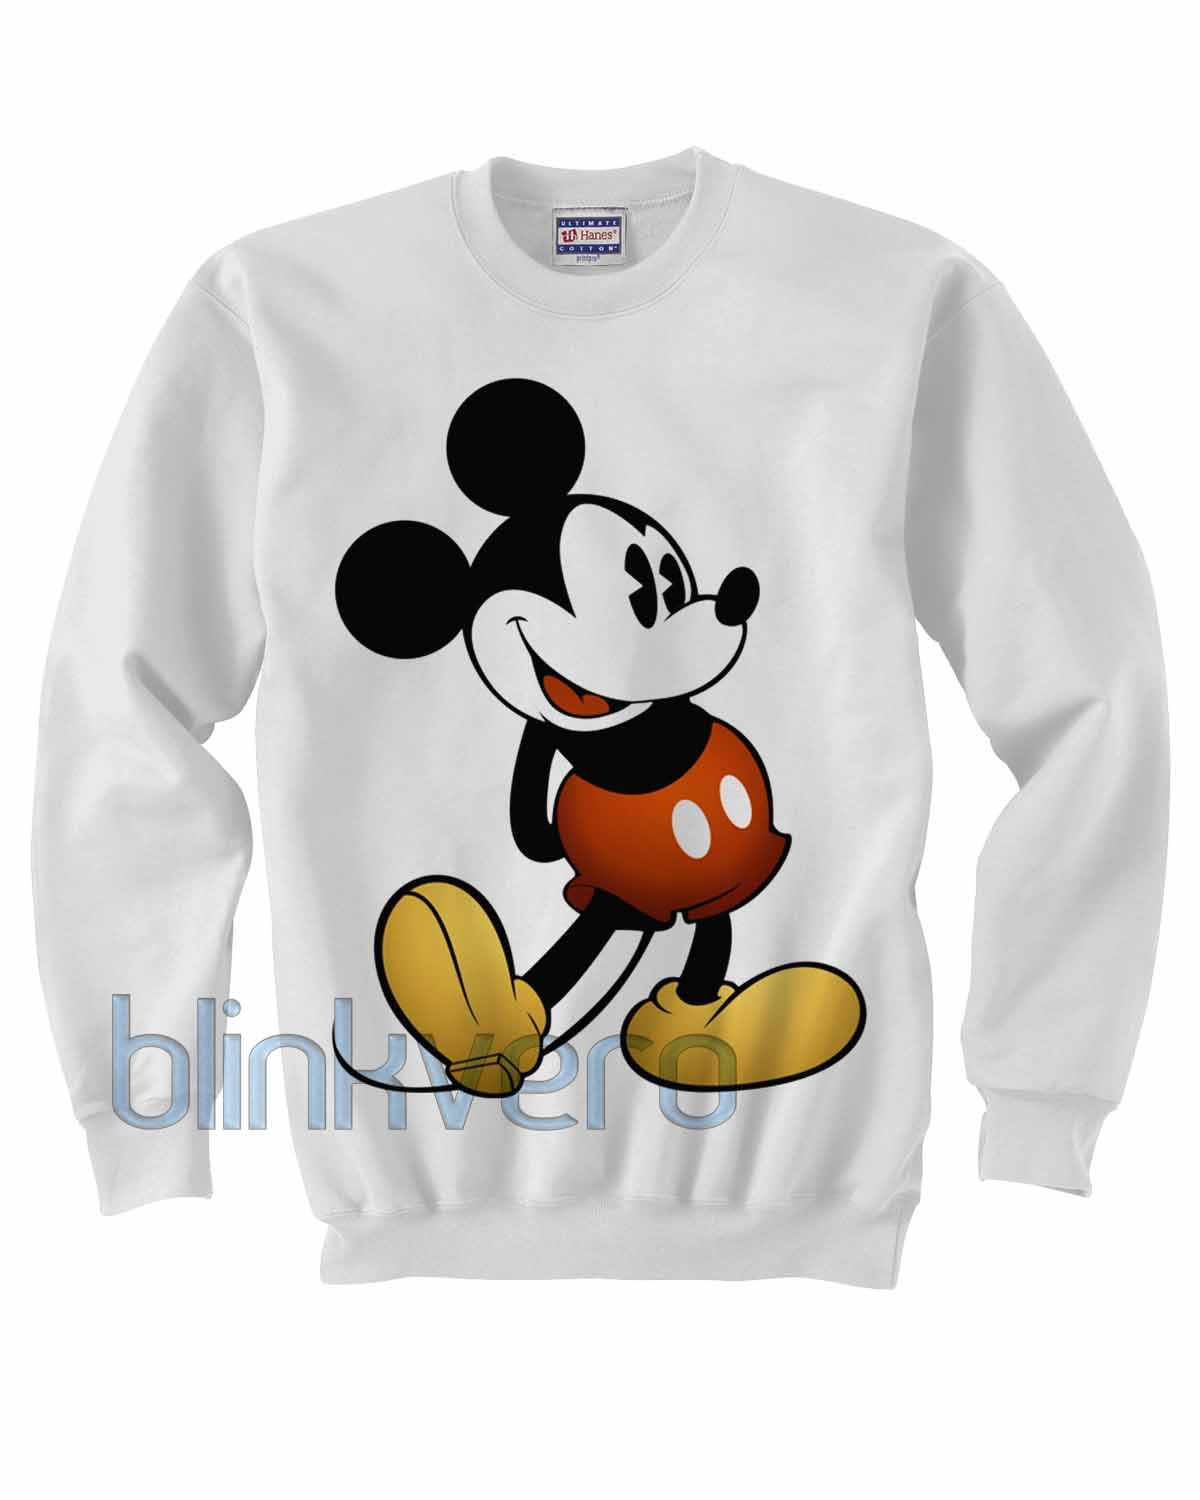 a444fb98d1 mickey mouse sweater hoodie sweatshirt shirt top unisex adult size